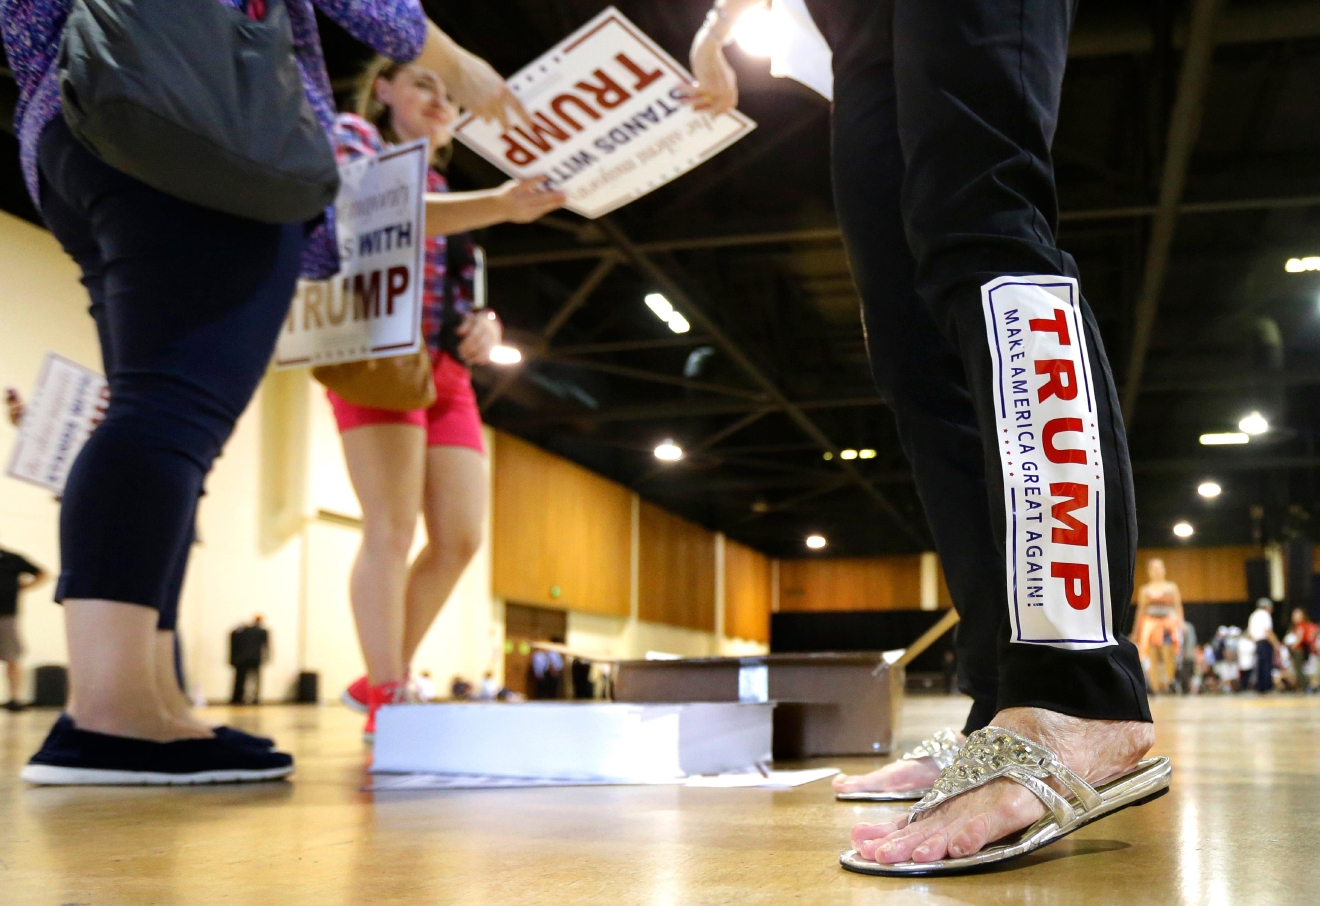 Volunteer Donna Cowan wears a Donald Trump bumper sticker on her leg as she hands out signs before a the start of a rally for the Republican presidential candidate in Eugene, Ore., Friday, May 6, 2016. (AP Photo/Ted S. Warren)